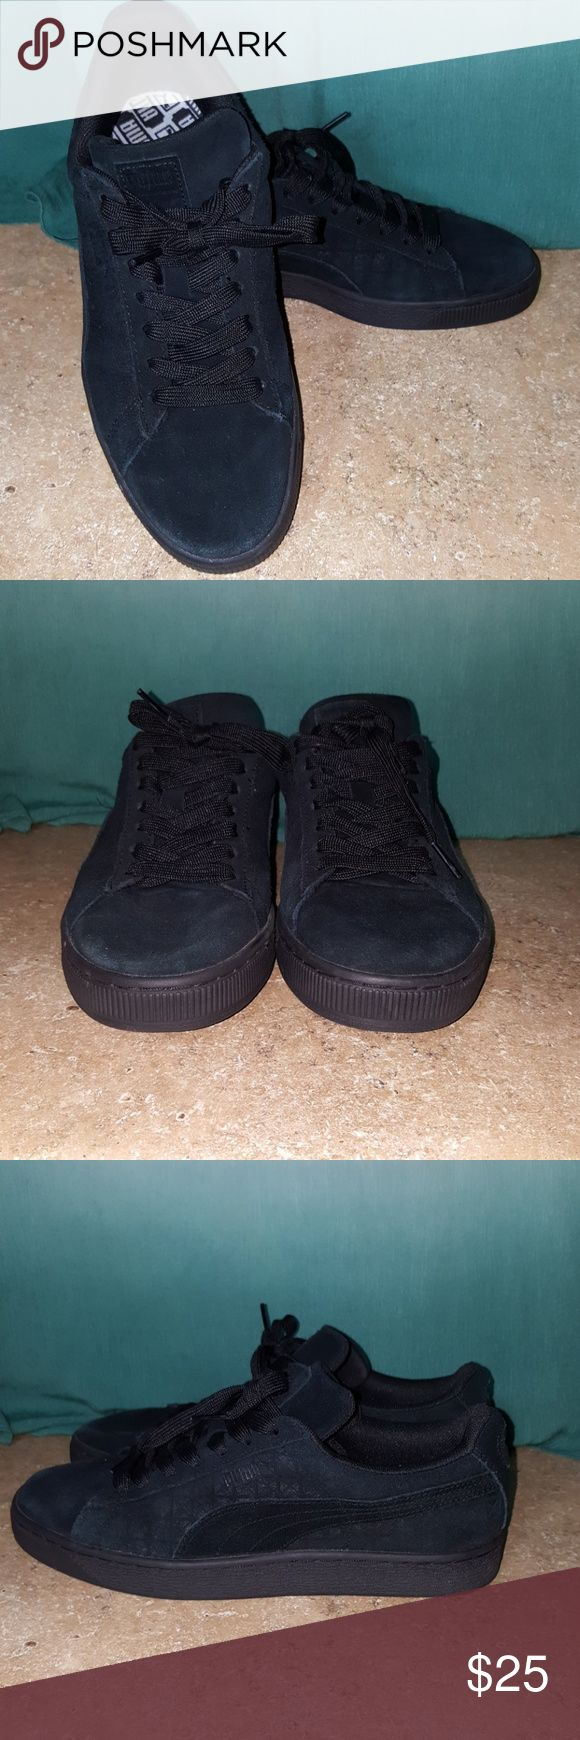 Black Puma shoes size 8 Suede black Puma shoes. Worn only once, they still look brand new. No scuffs. Puma Shoes Sneakers